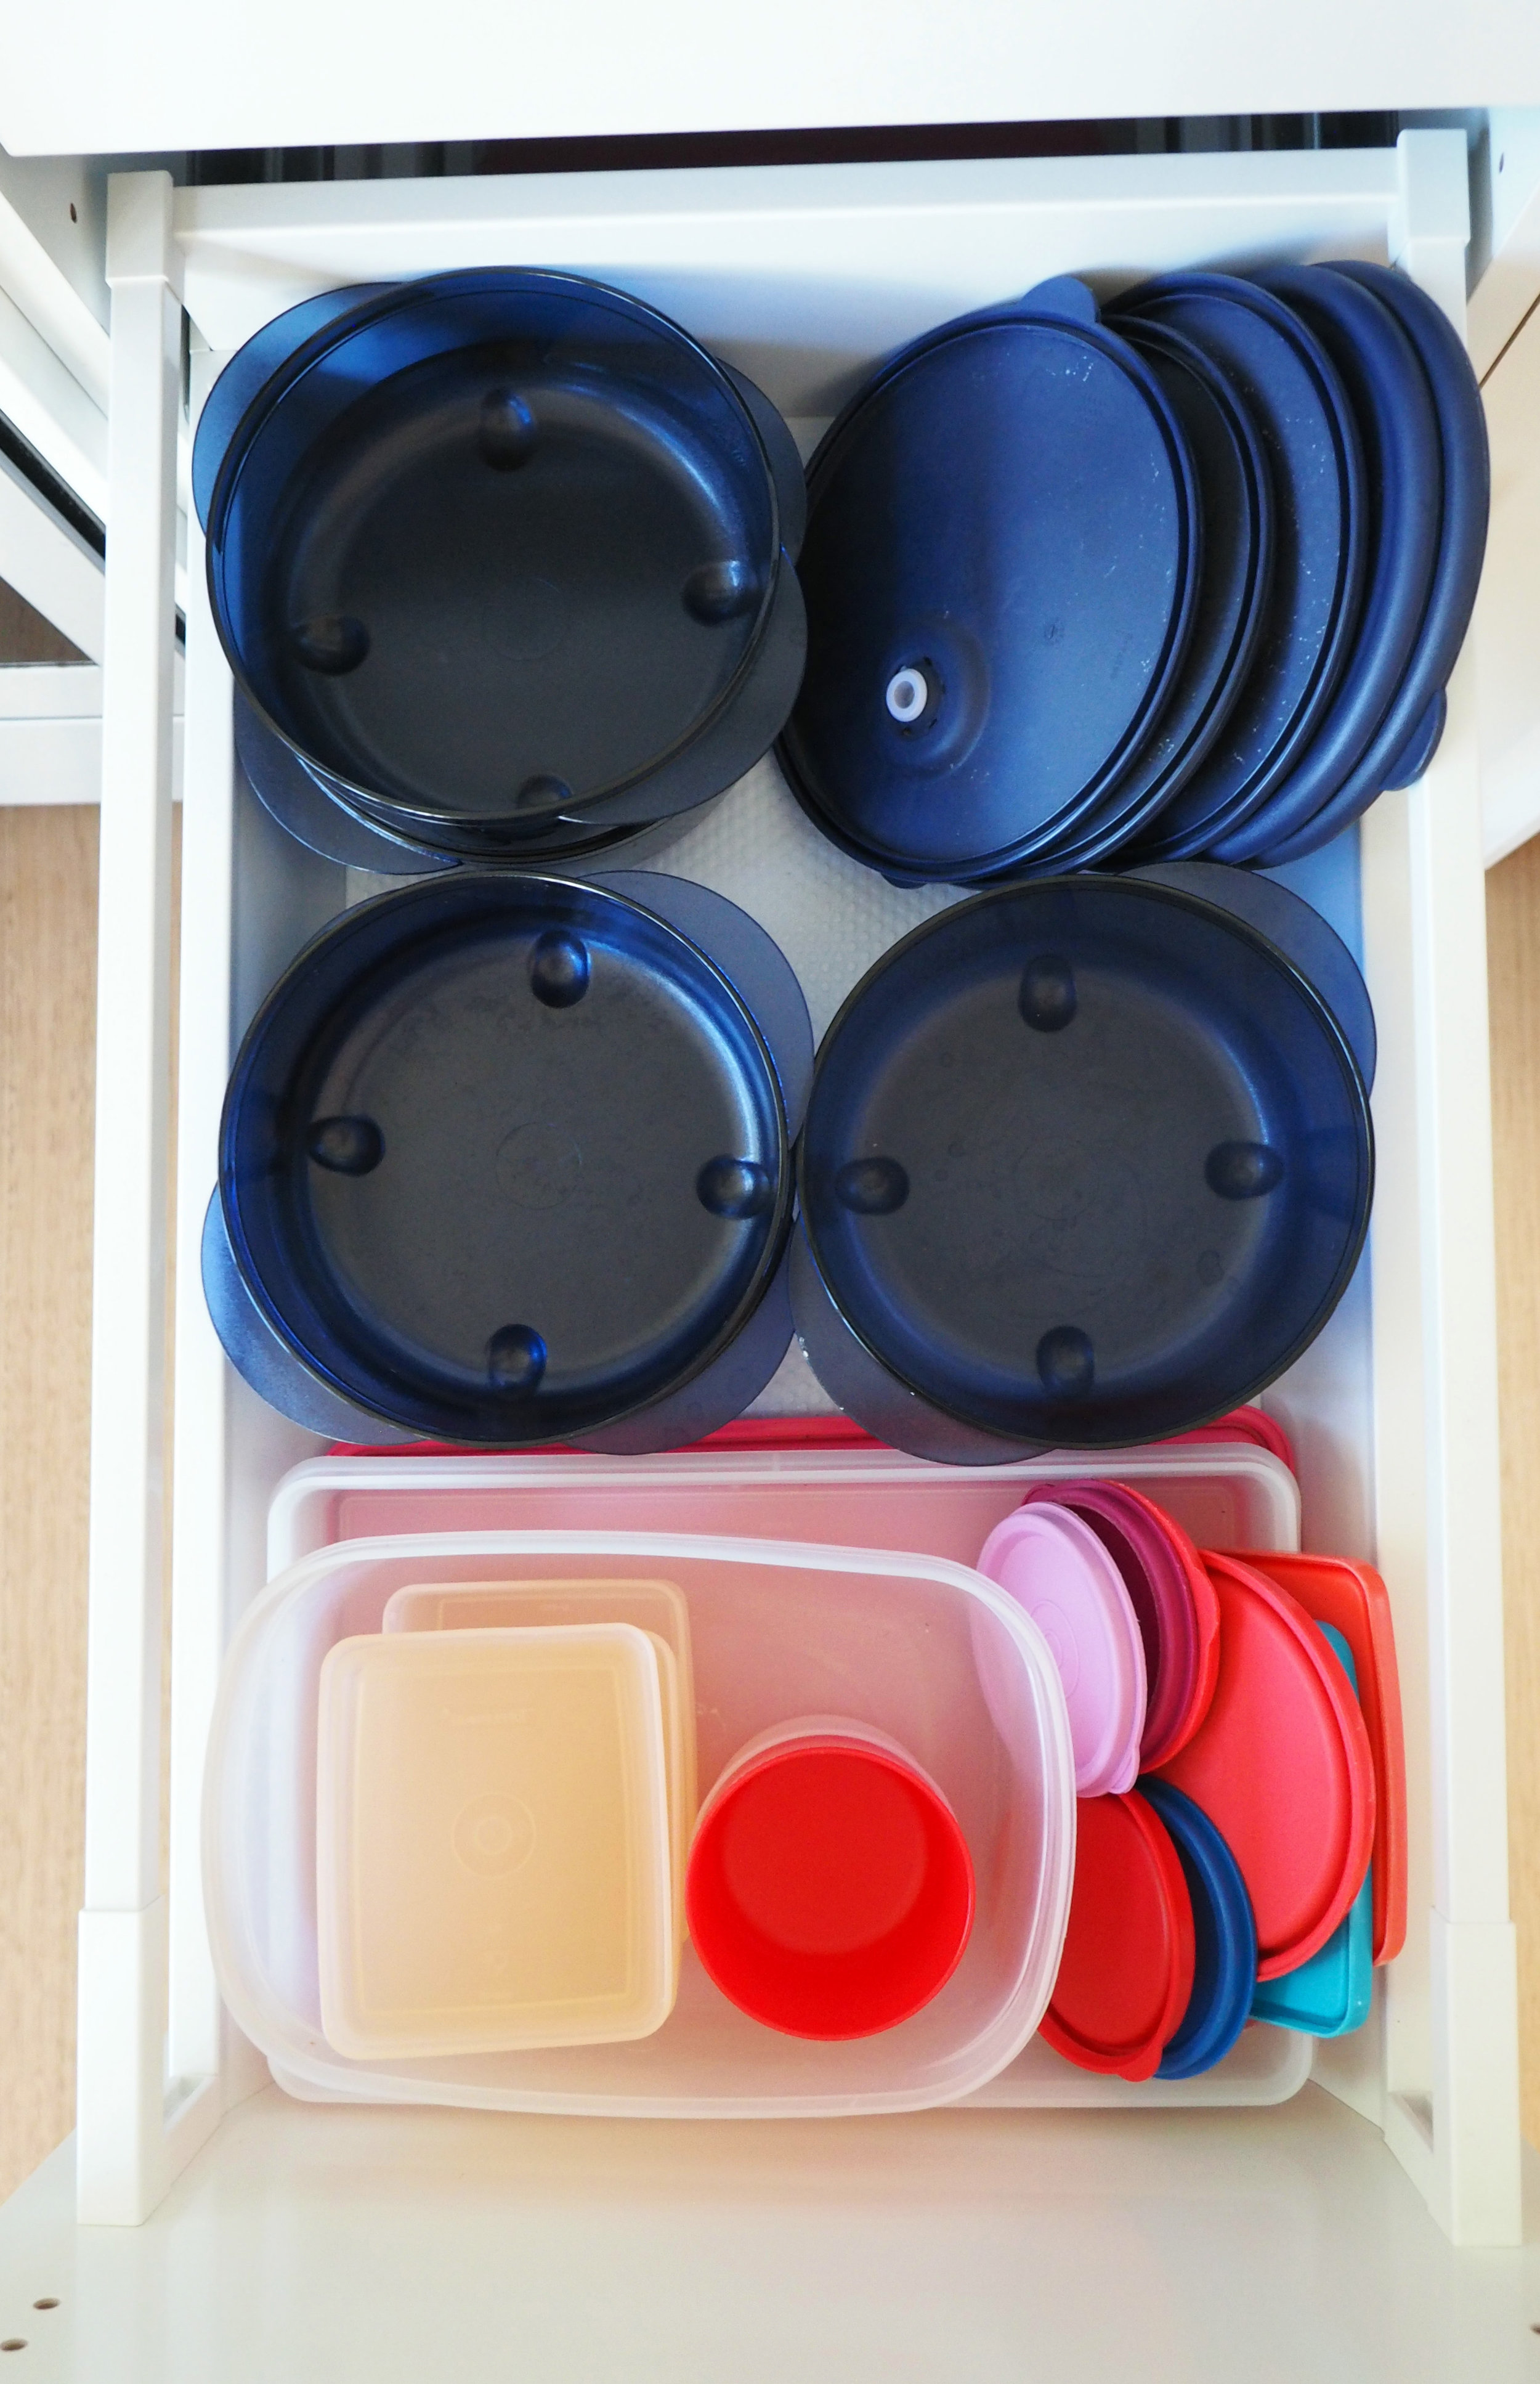 Organise plastics by separating containers from lids